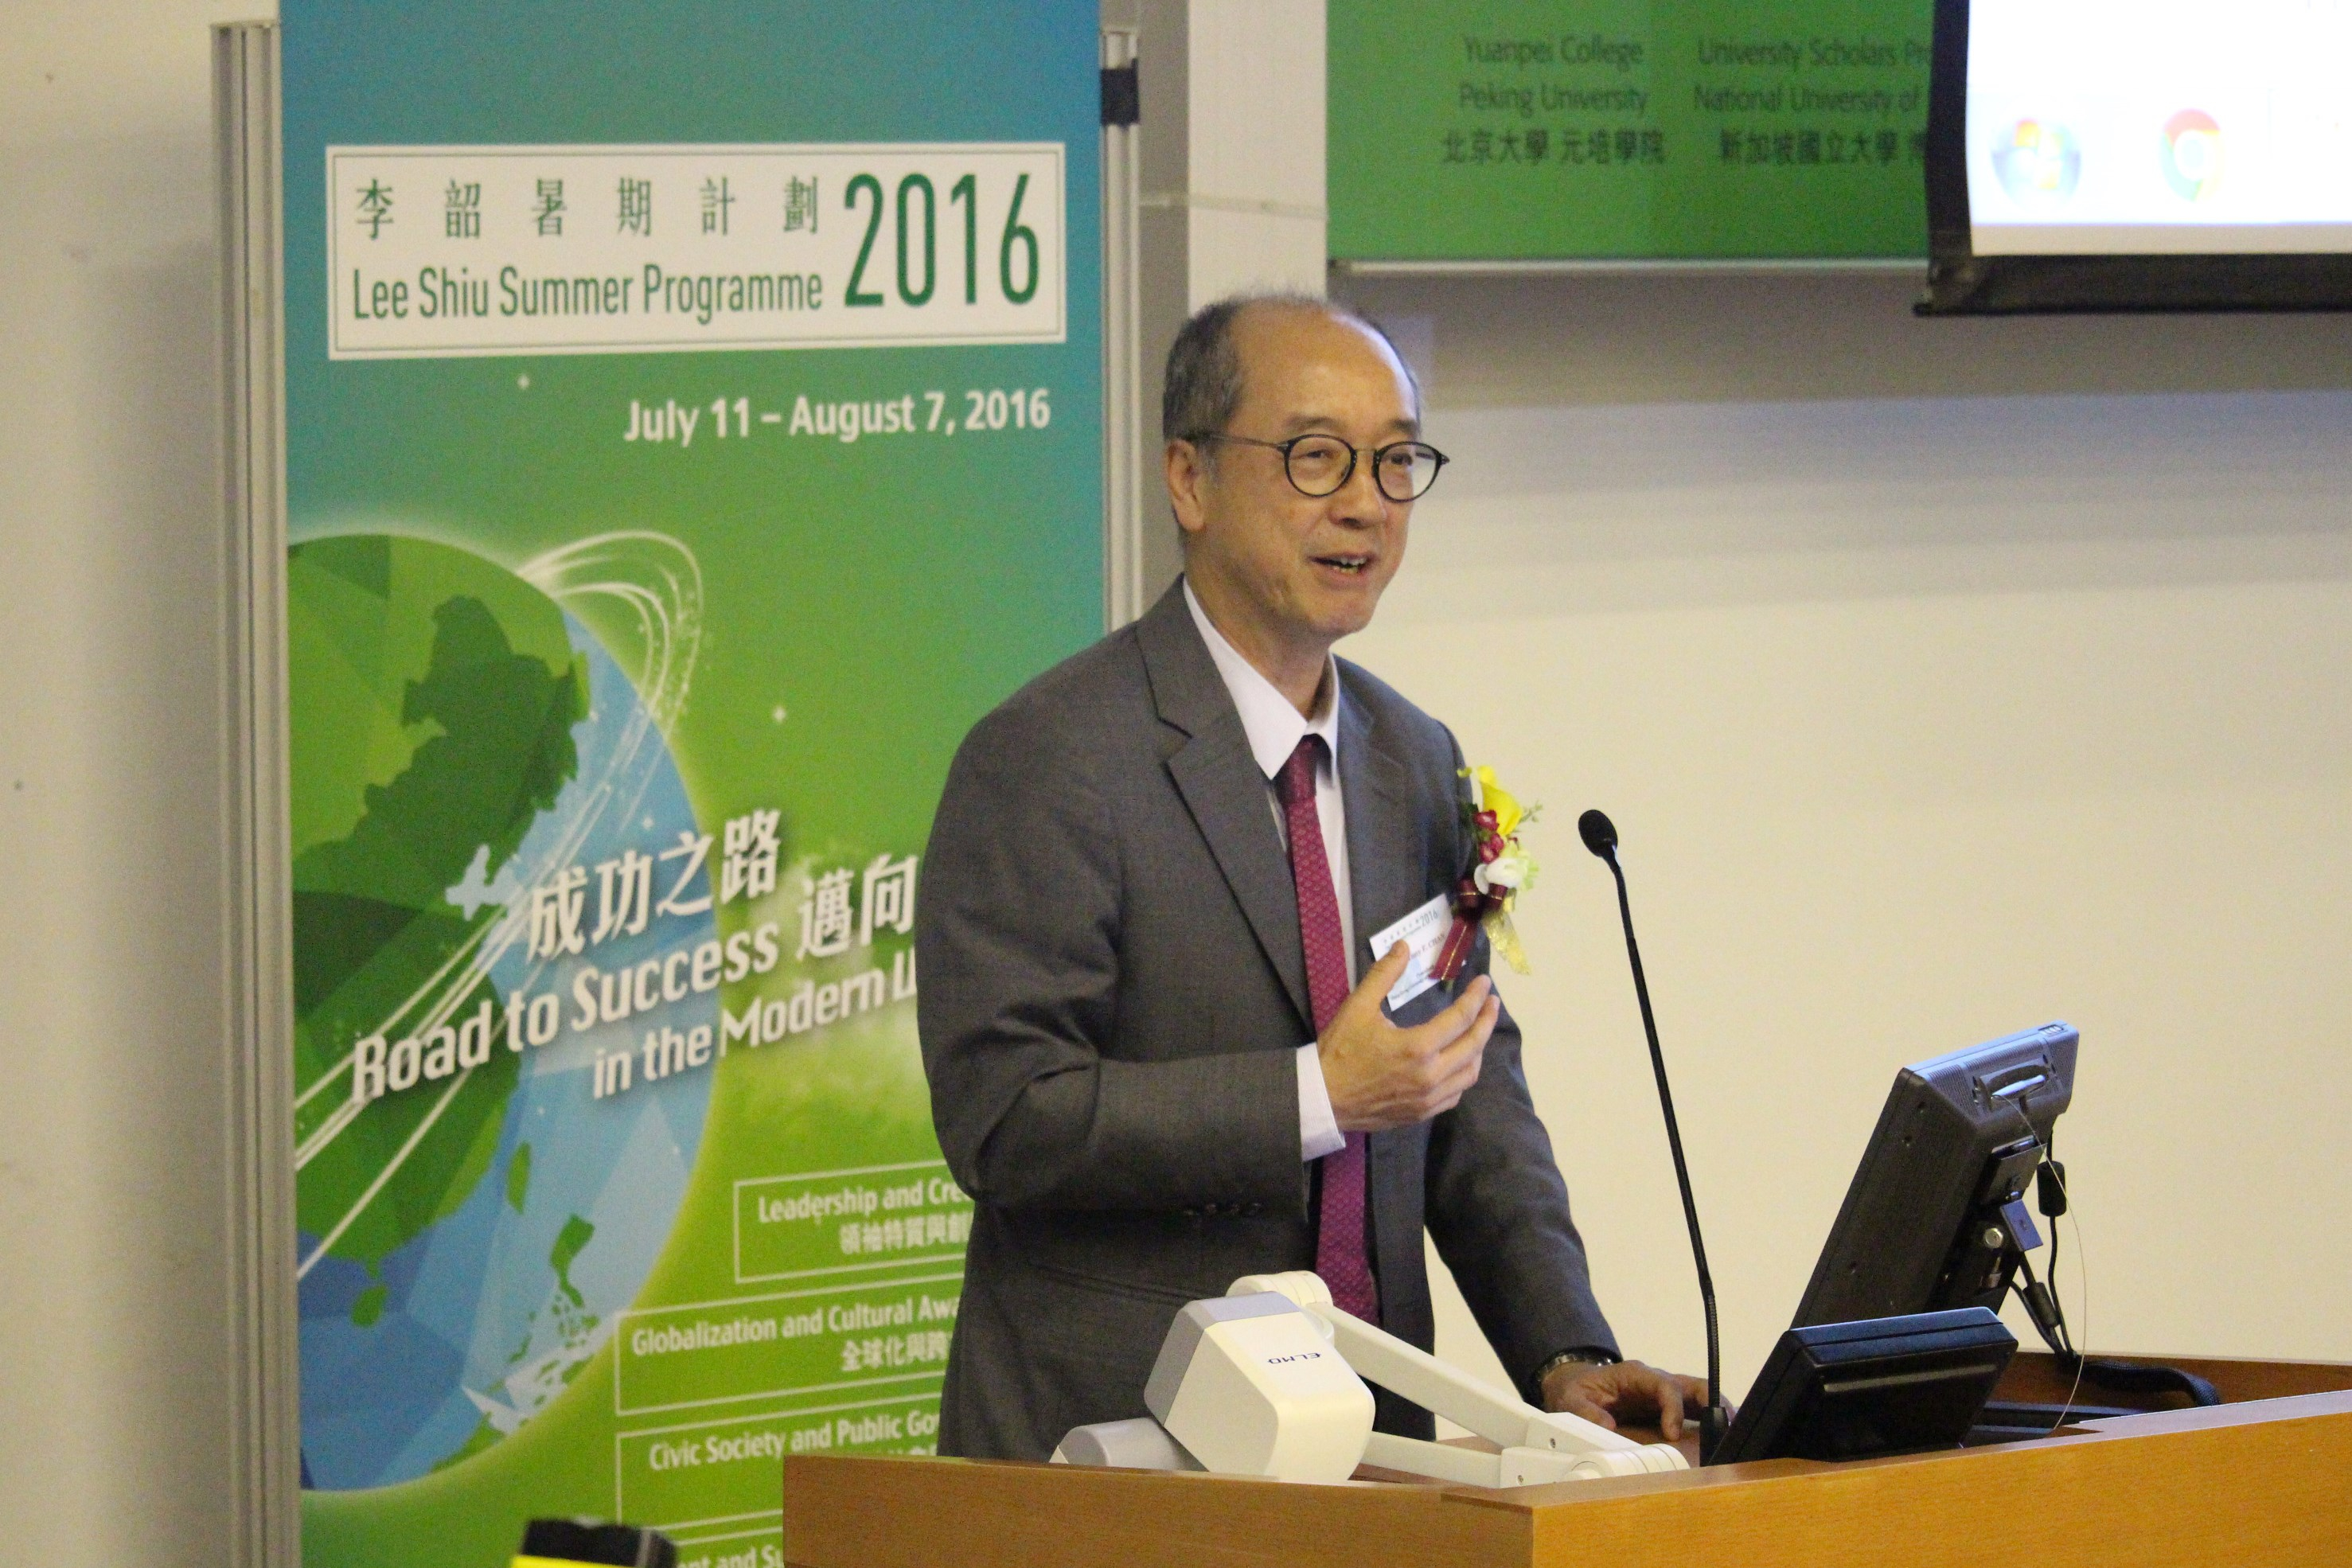 Prof. Tony F Chan gives a talk at the ceremony, on the topic of 'Road to Success in the Modern World: Reflection from My Student Days'.